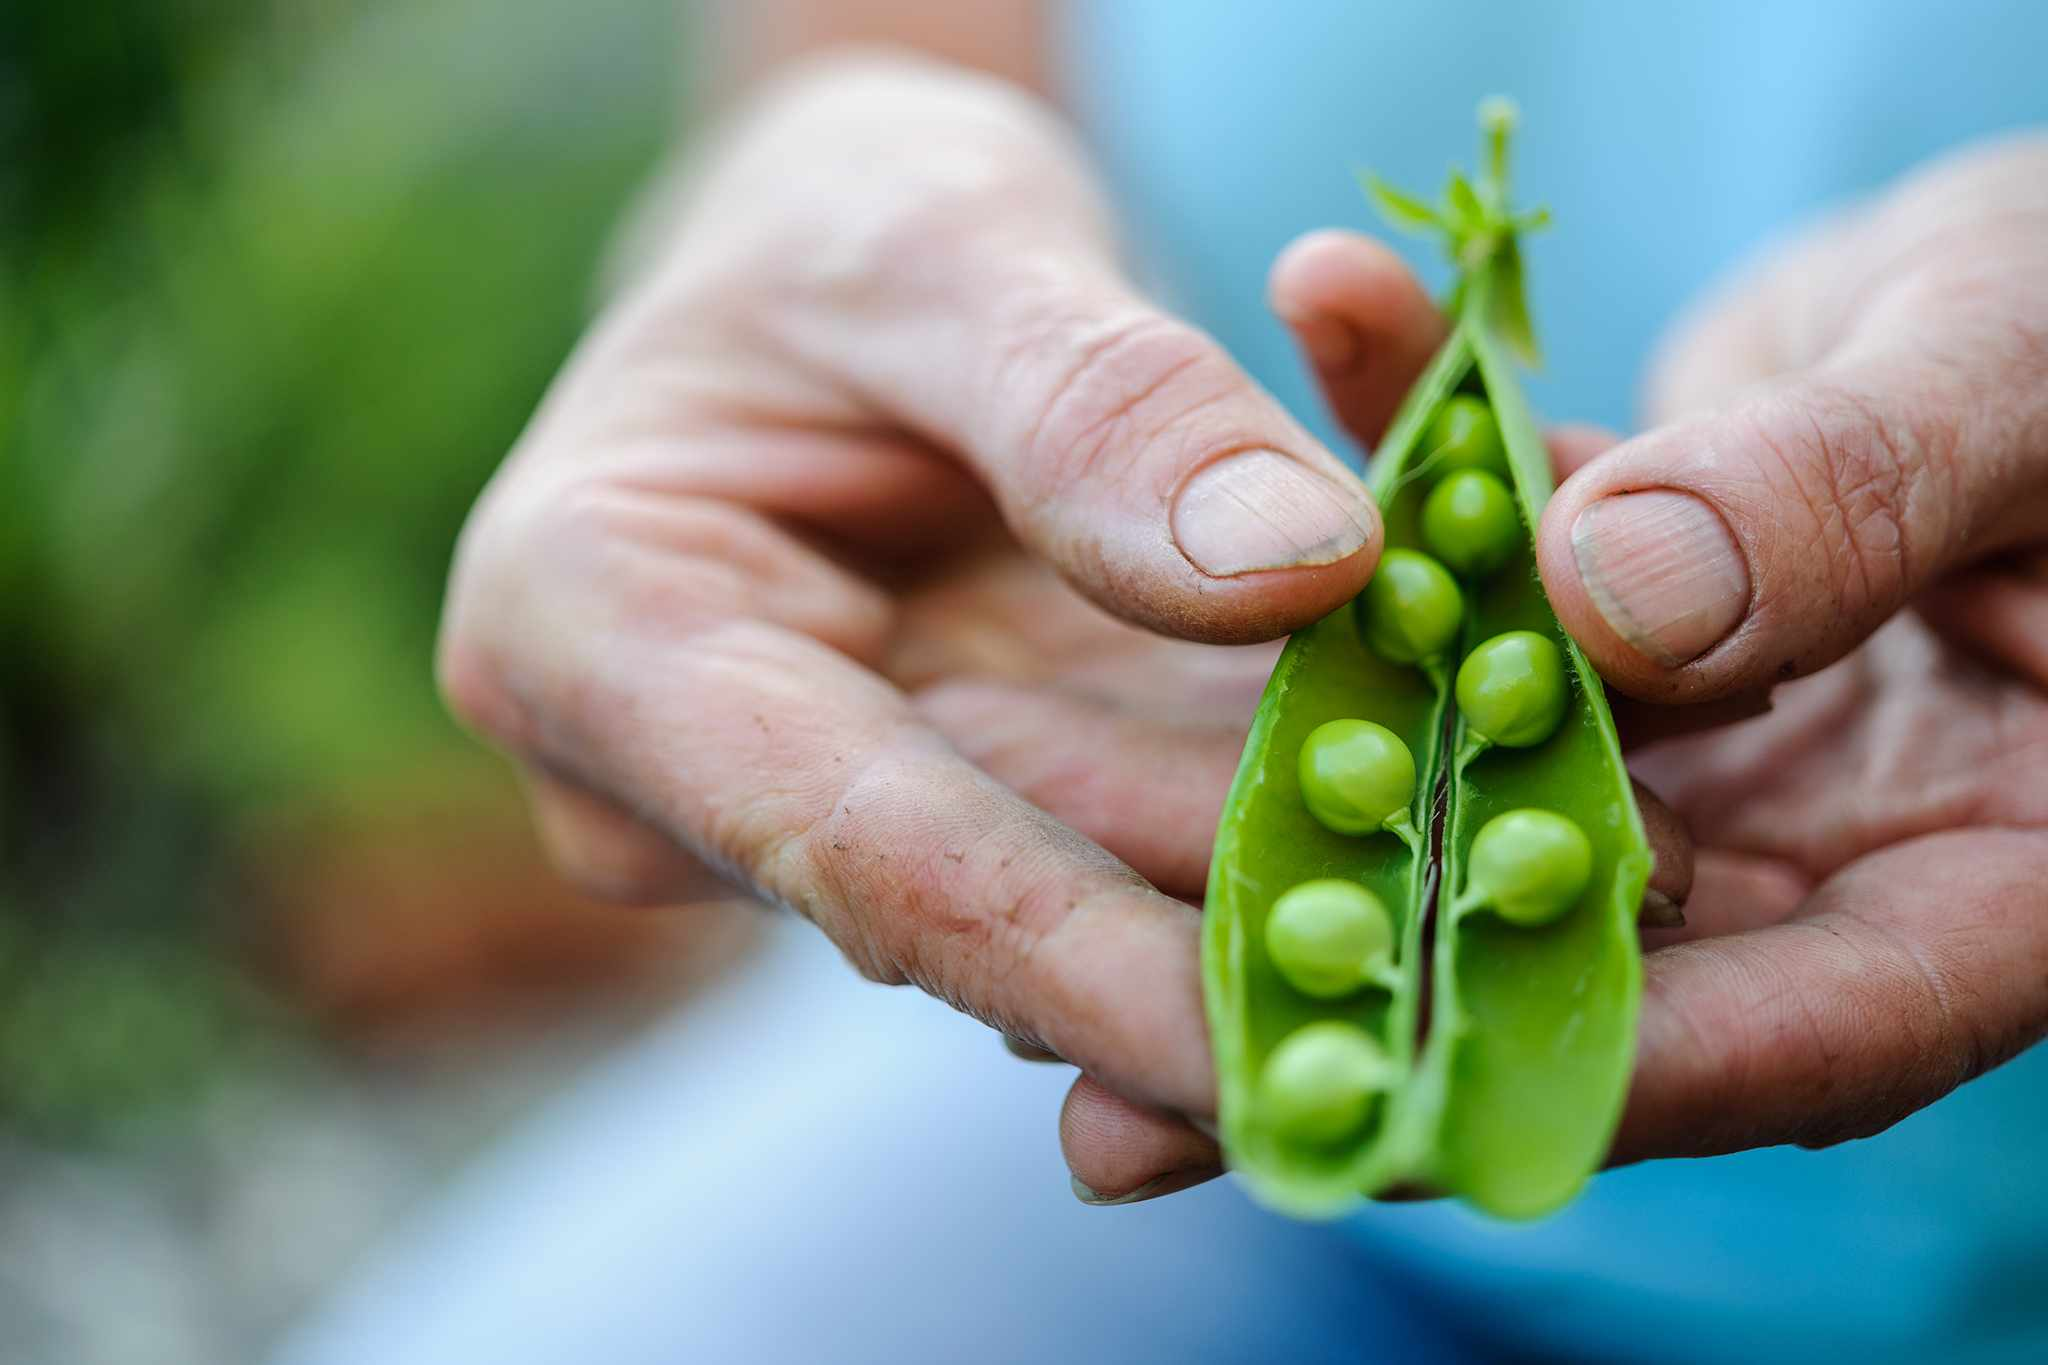 Open pod of peas in hand